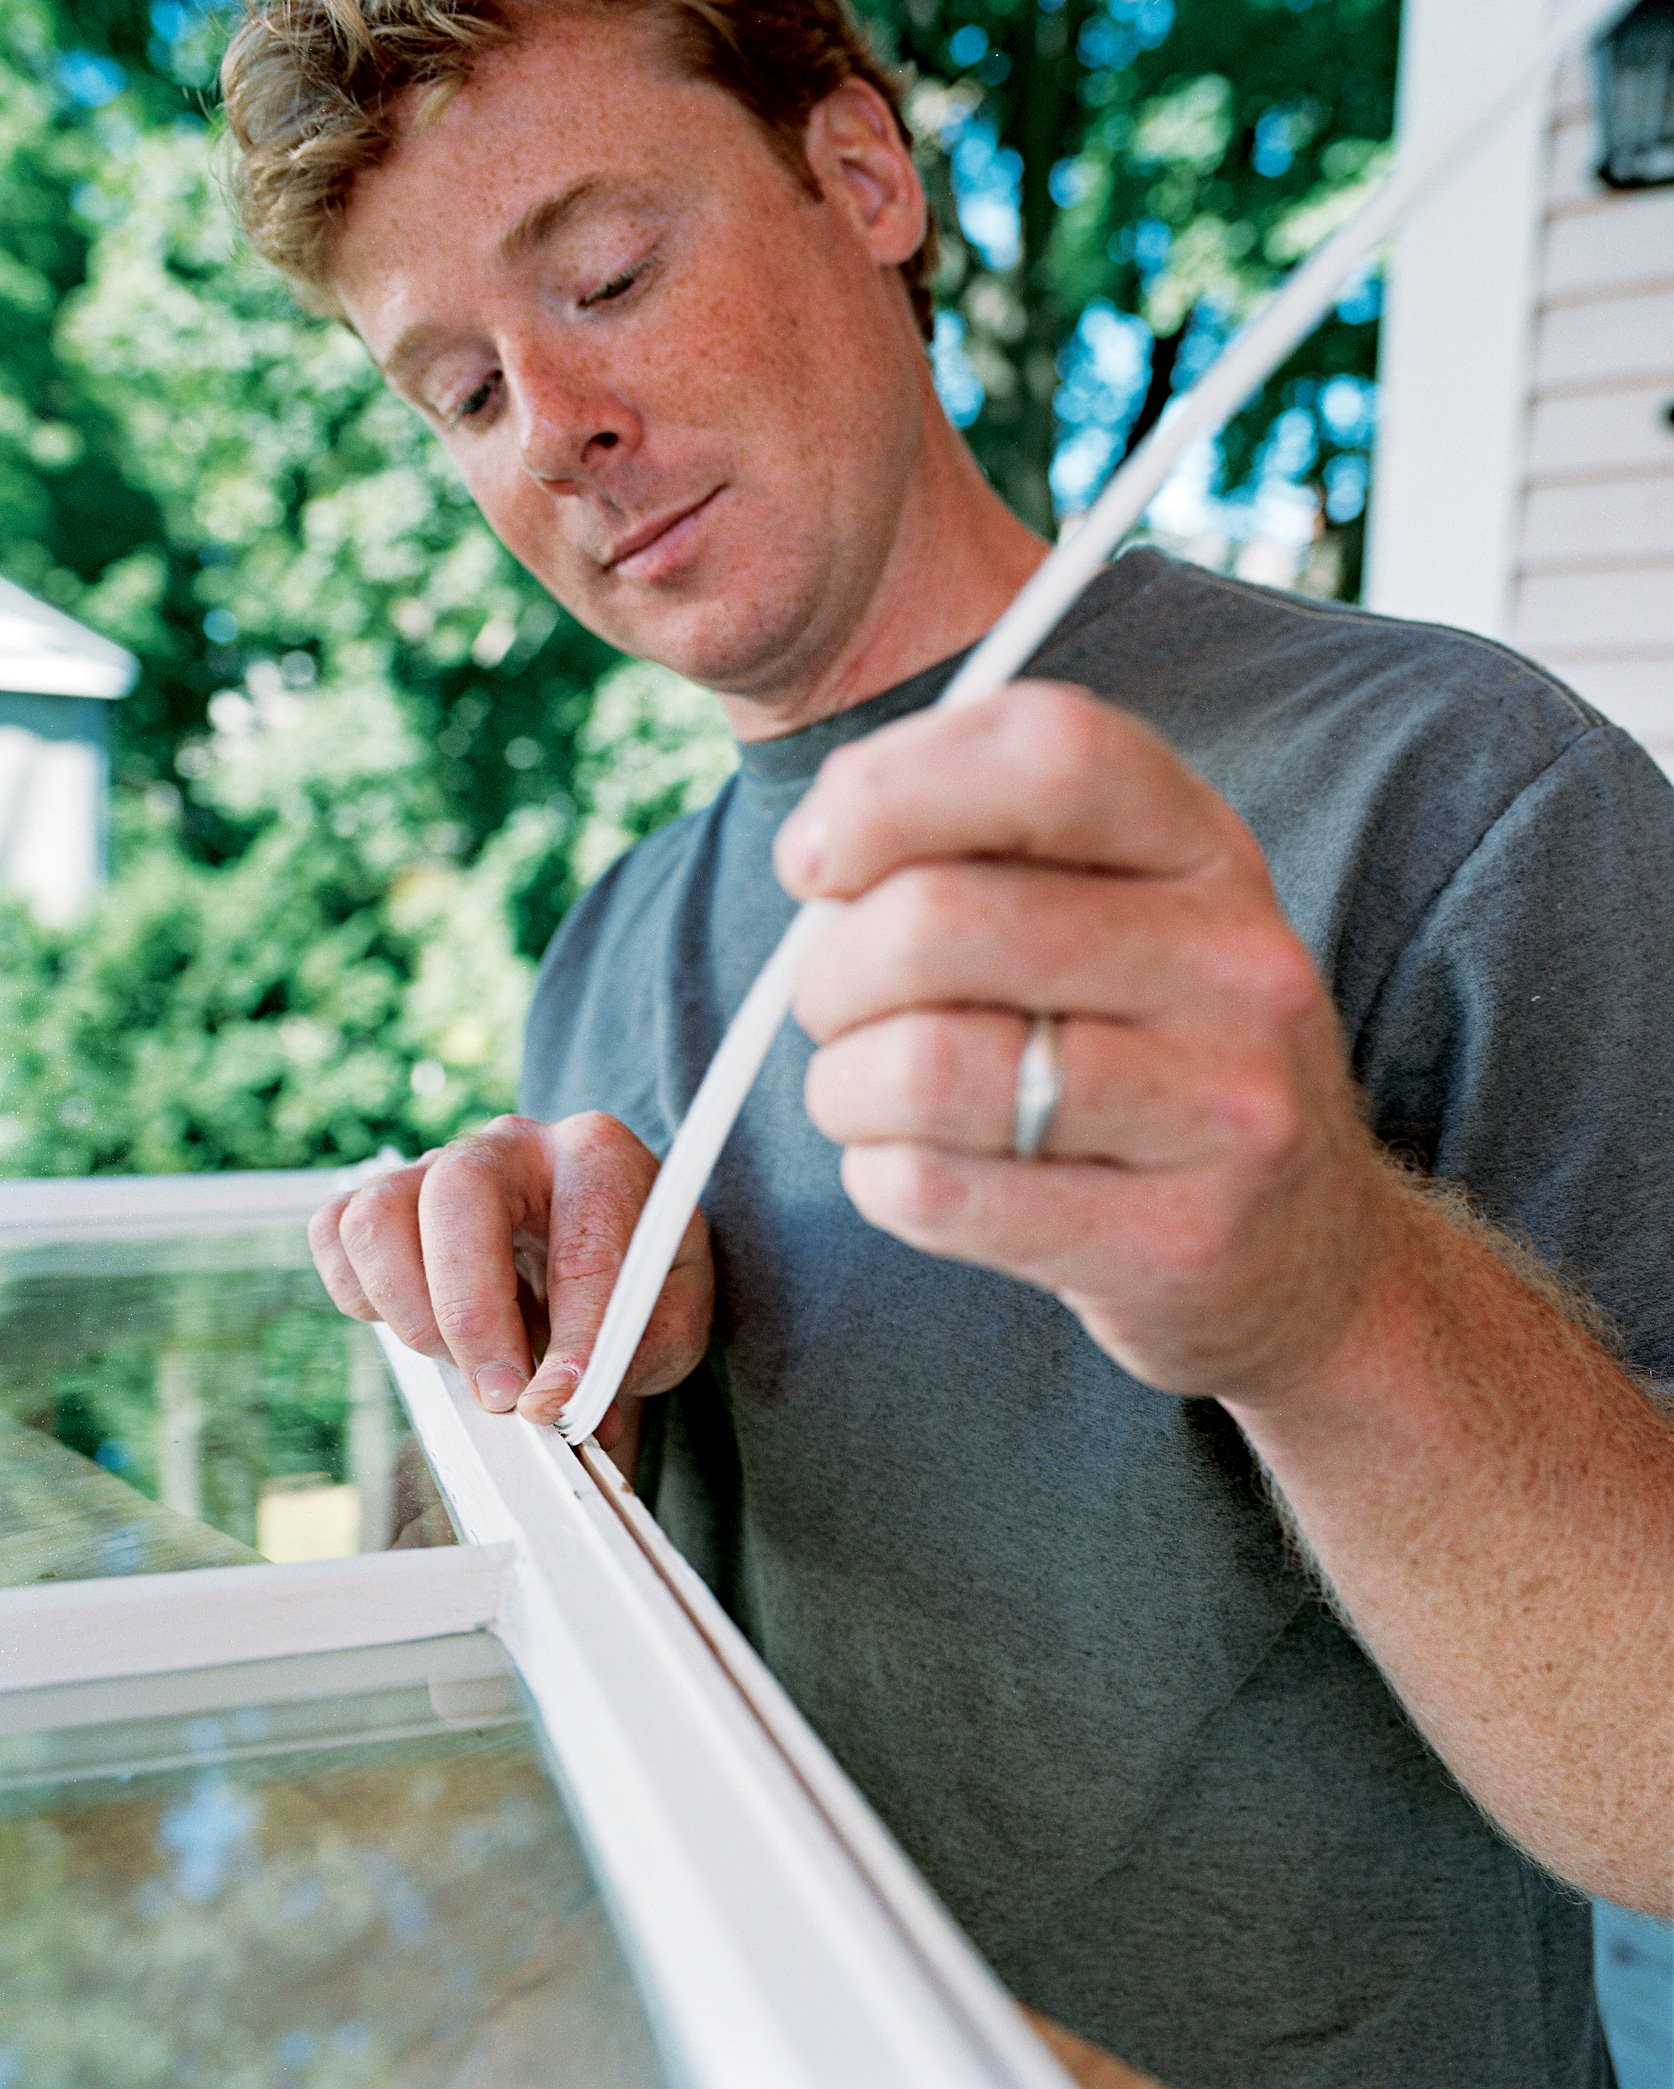 Person weatherstripping double hung window.